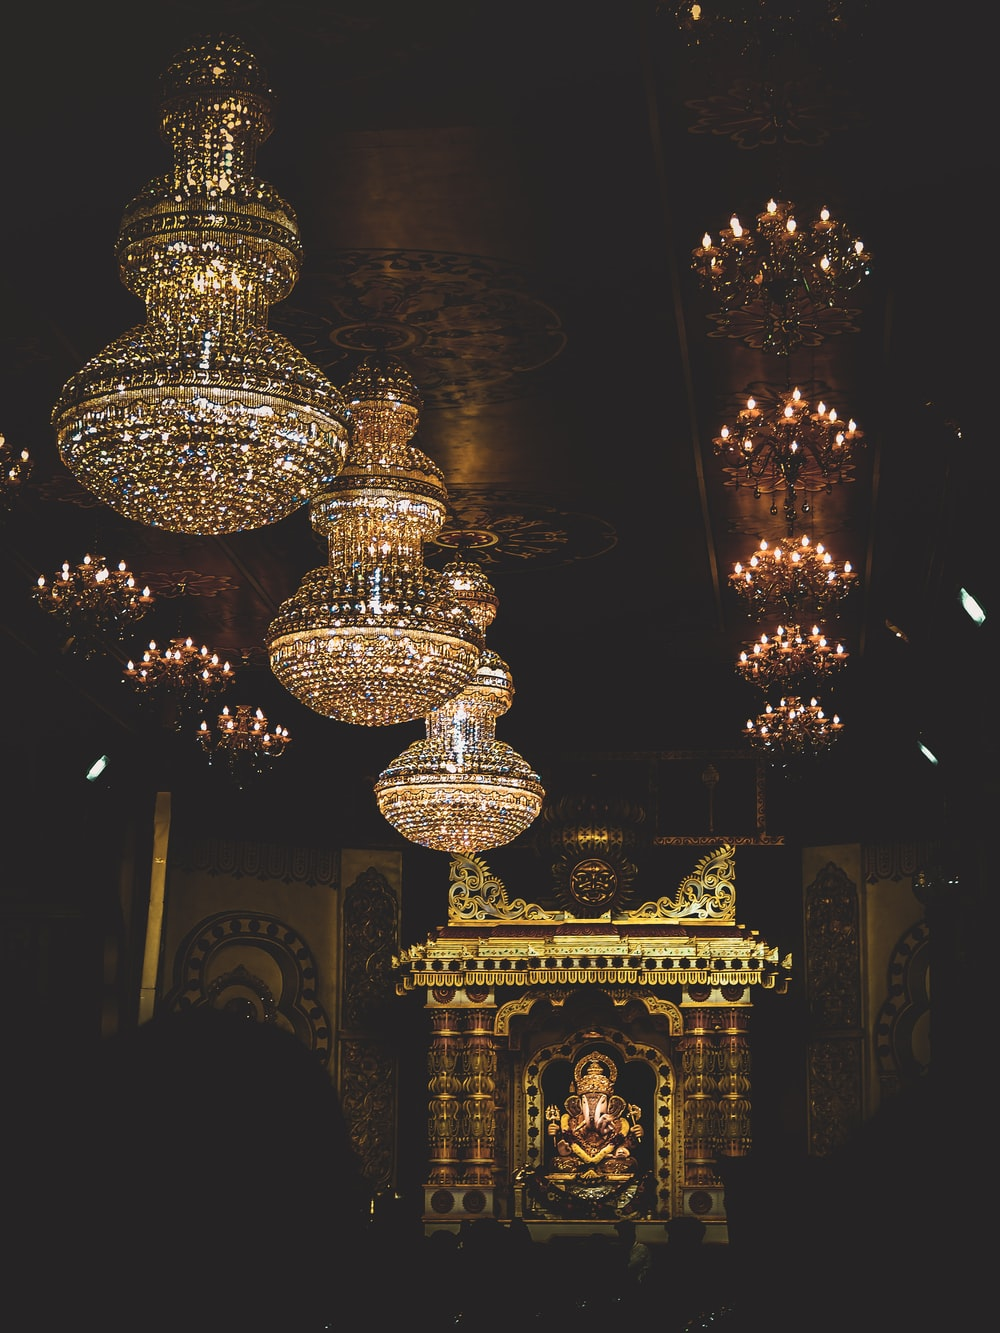 brass and crystal chandelier turned on during nighttime